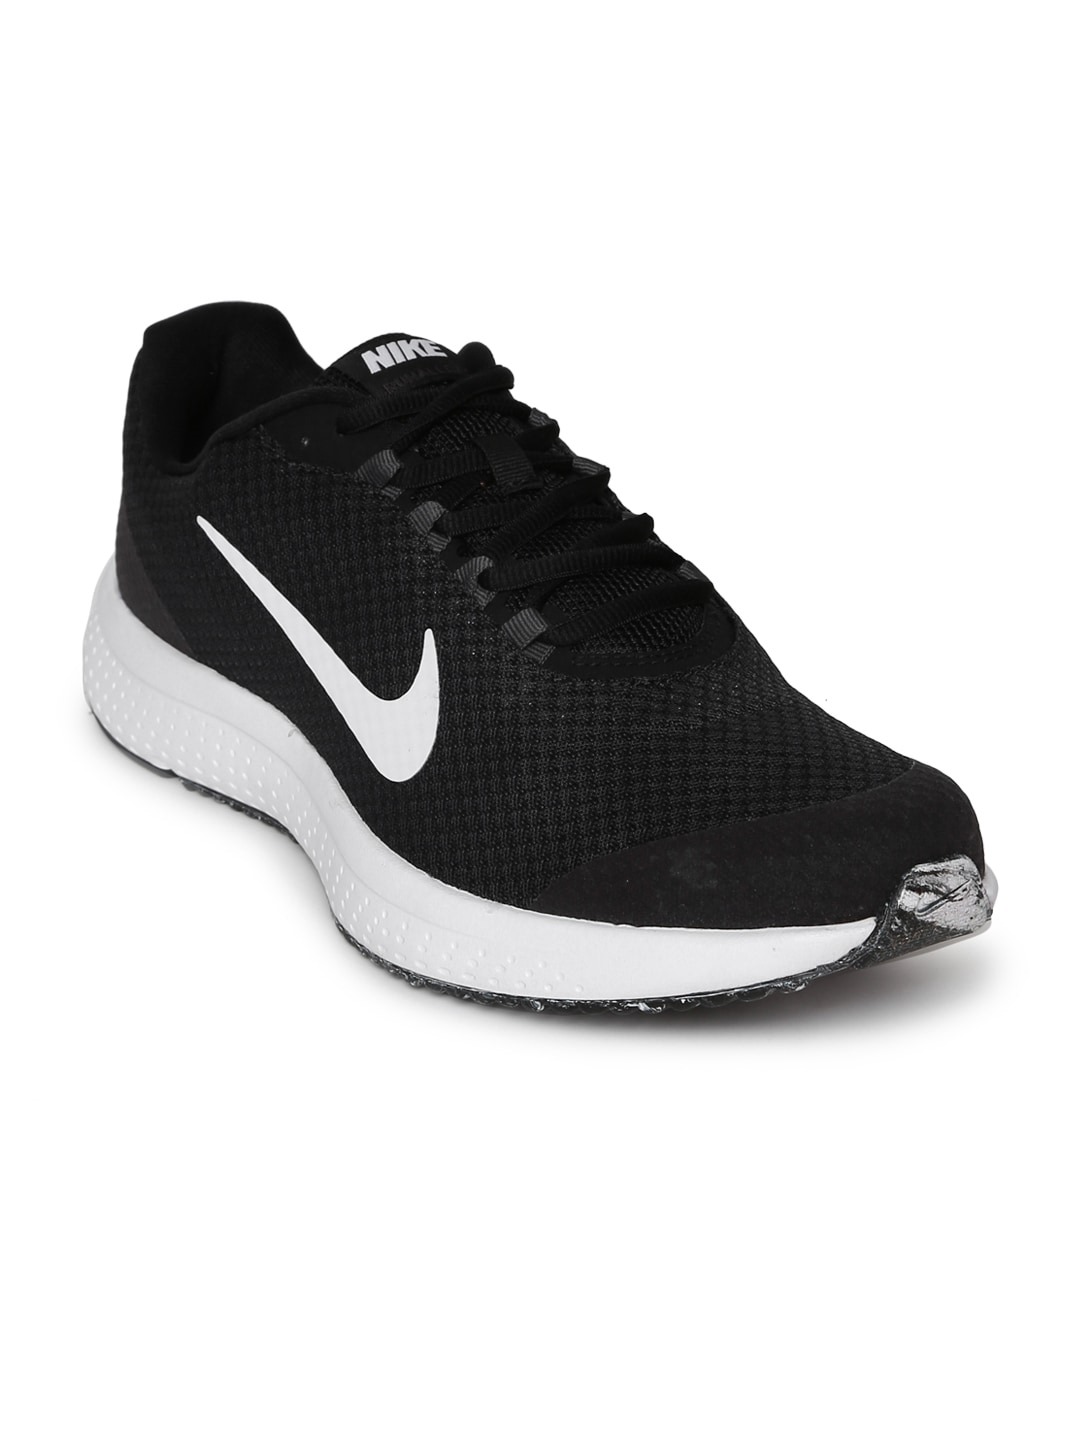 2e0afe6007b1 Nike Darling Biba Brune - Buy Nike Darling Biba Brune online in India